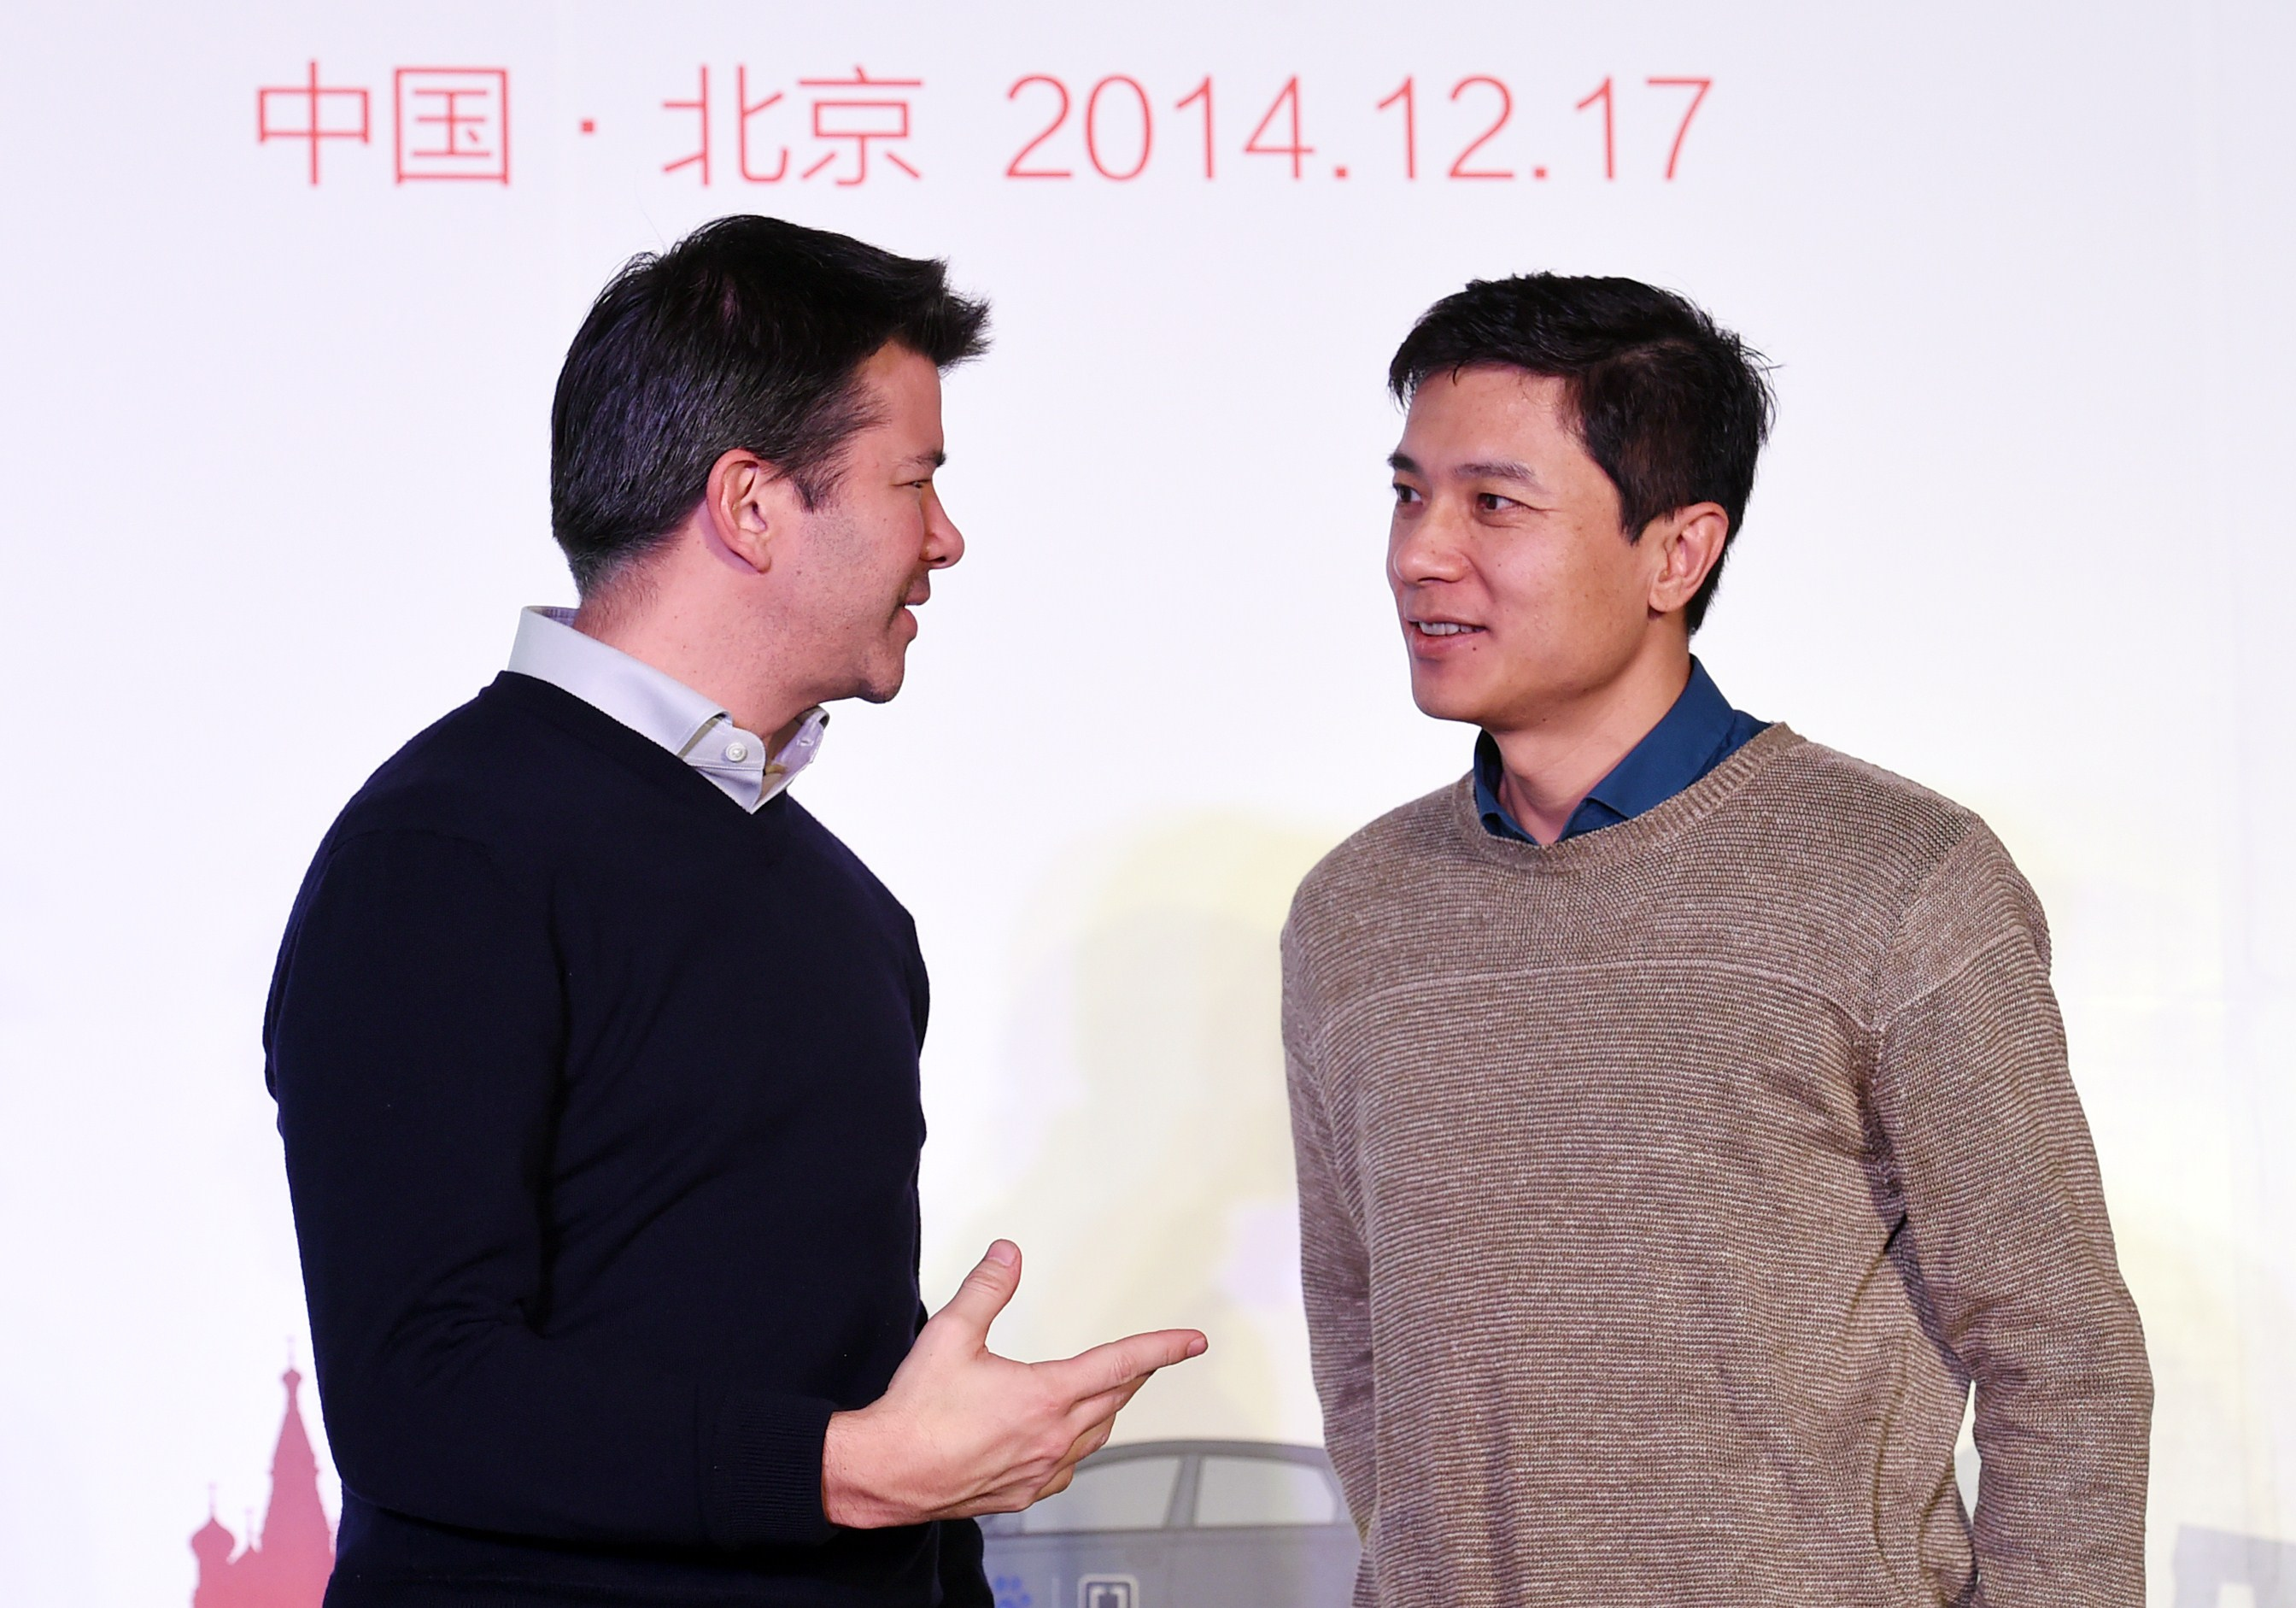 Uber CEO Travis Kalanick (L) and Baidu Chairman and CEO Robin Li at a signing ceremony and press conference in Beijing on Dec. 17, 2014.